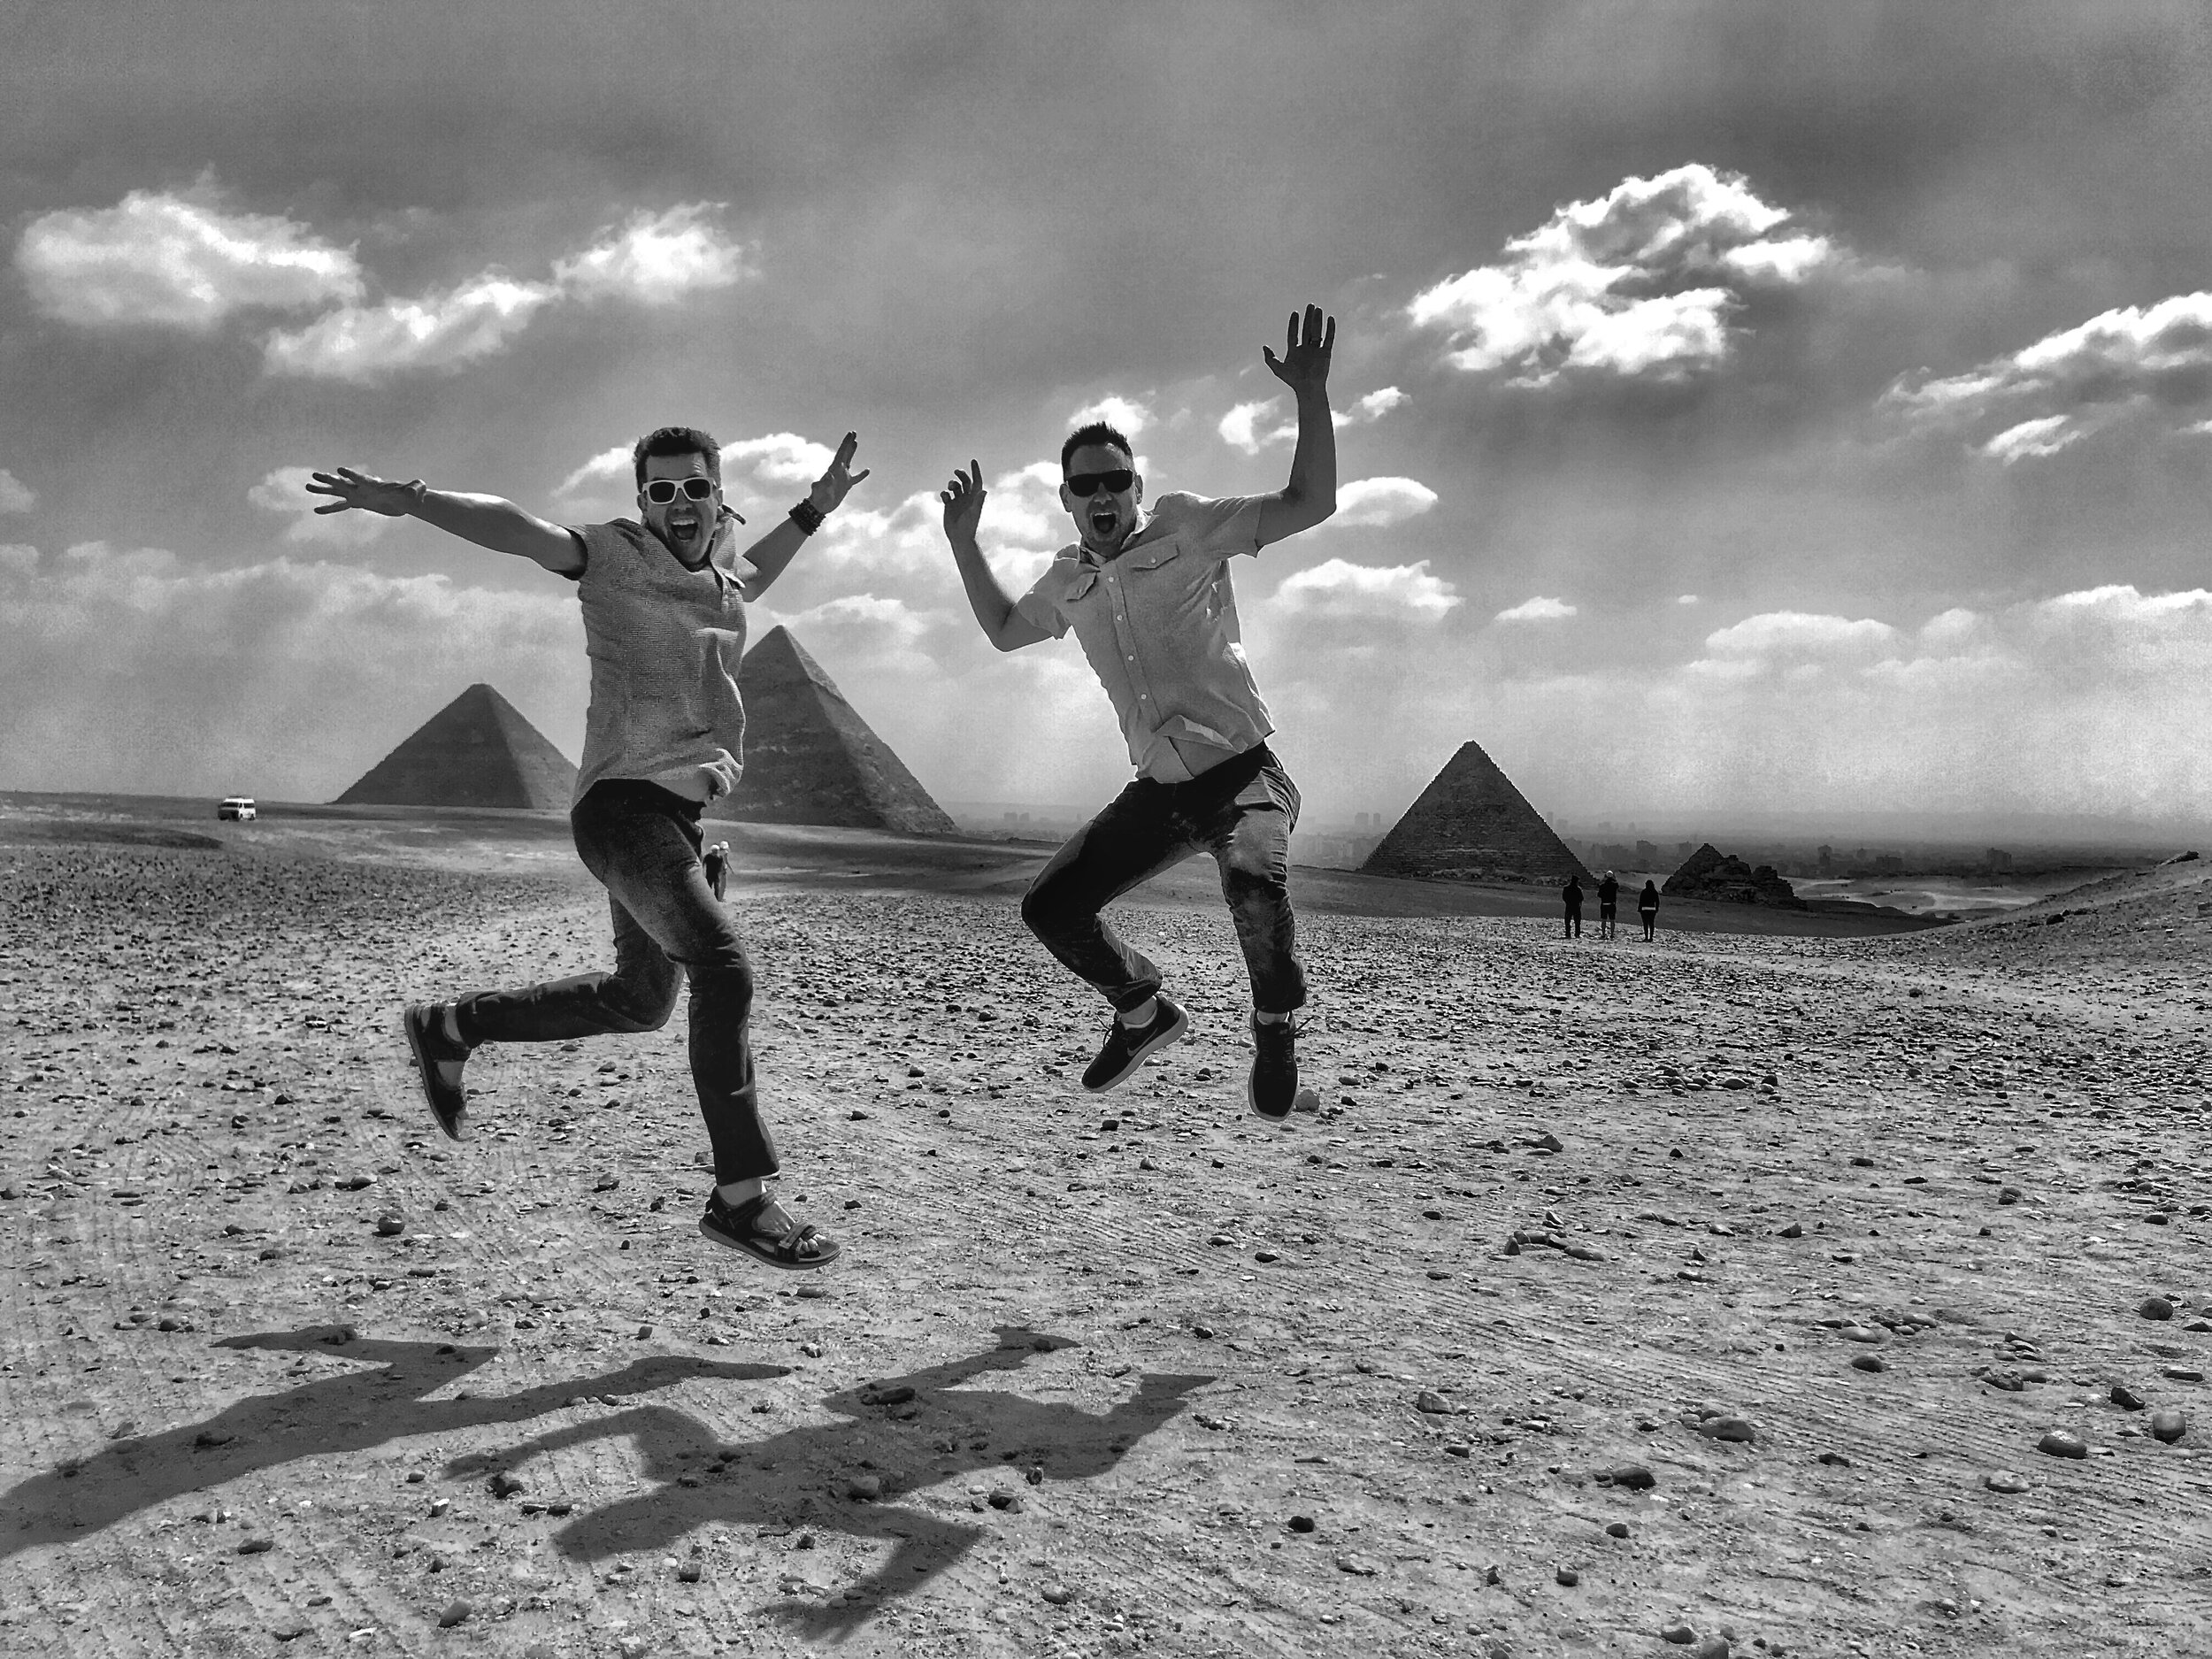 Wally and Duke pretend to jump for joy during their visit to the Giza Necropolis — but really their guide made the experience quite unpleasant